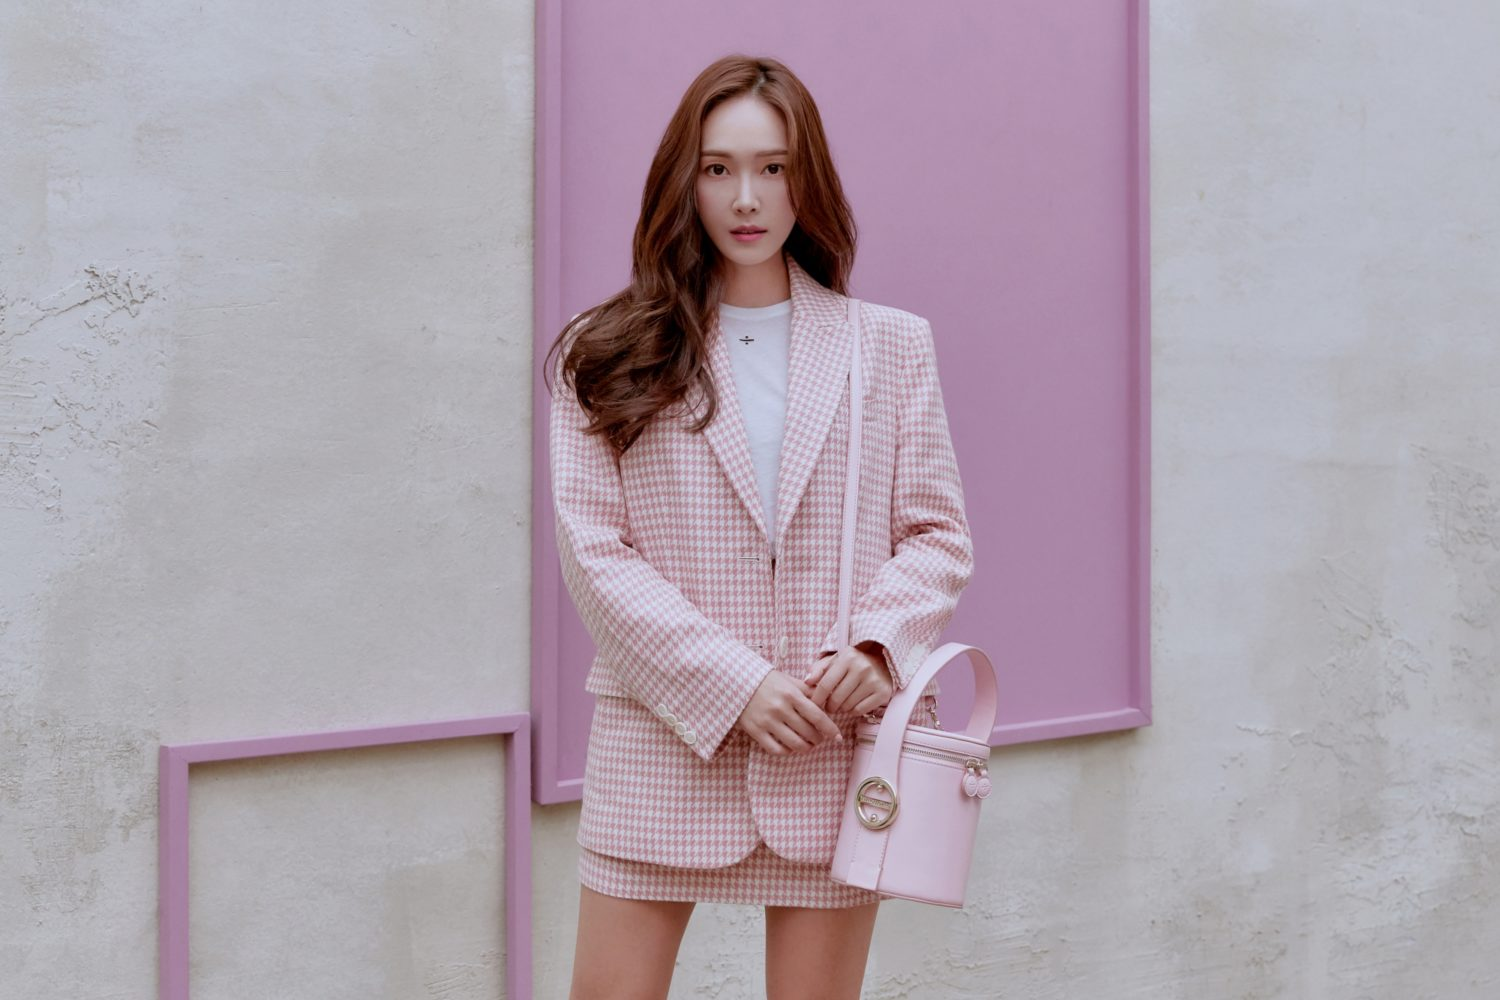 Jung Online Jessica Jung To Collaborate With Zalora To Launch An Exclusive Bag